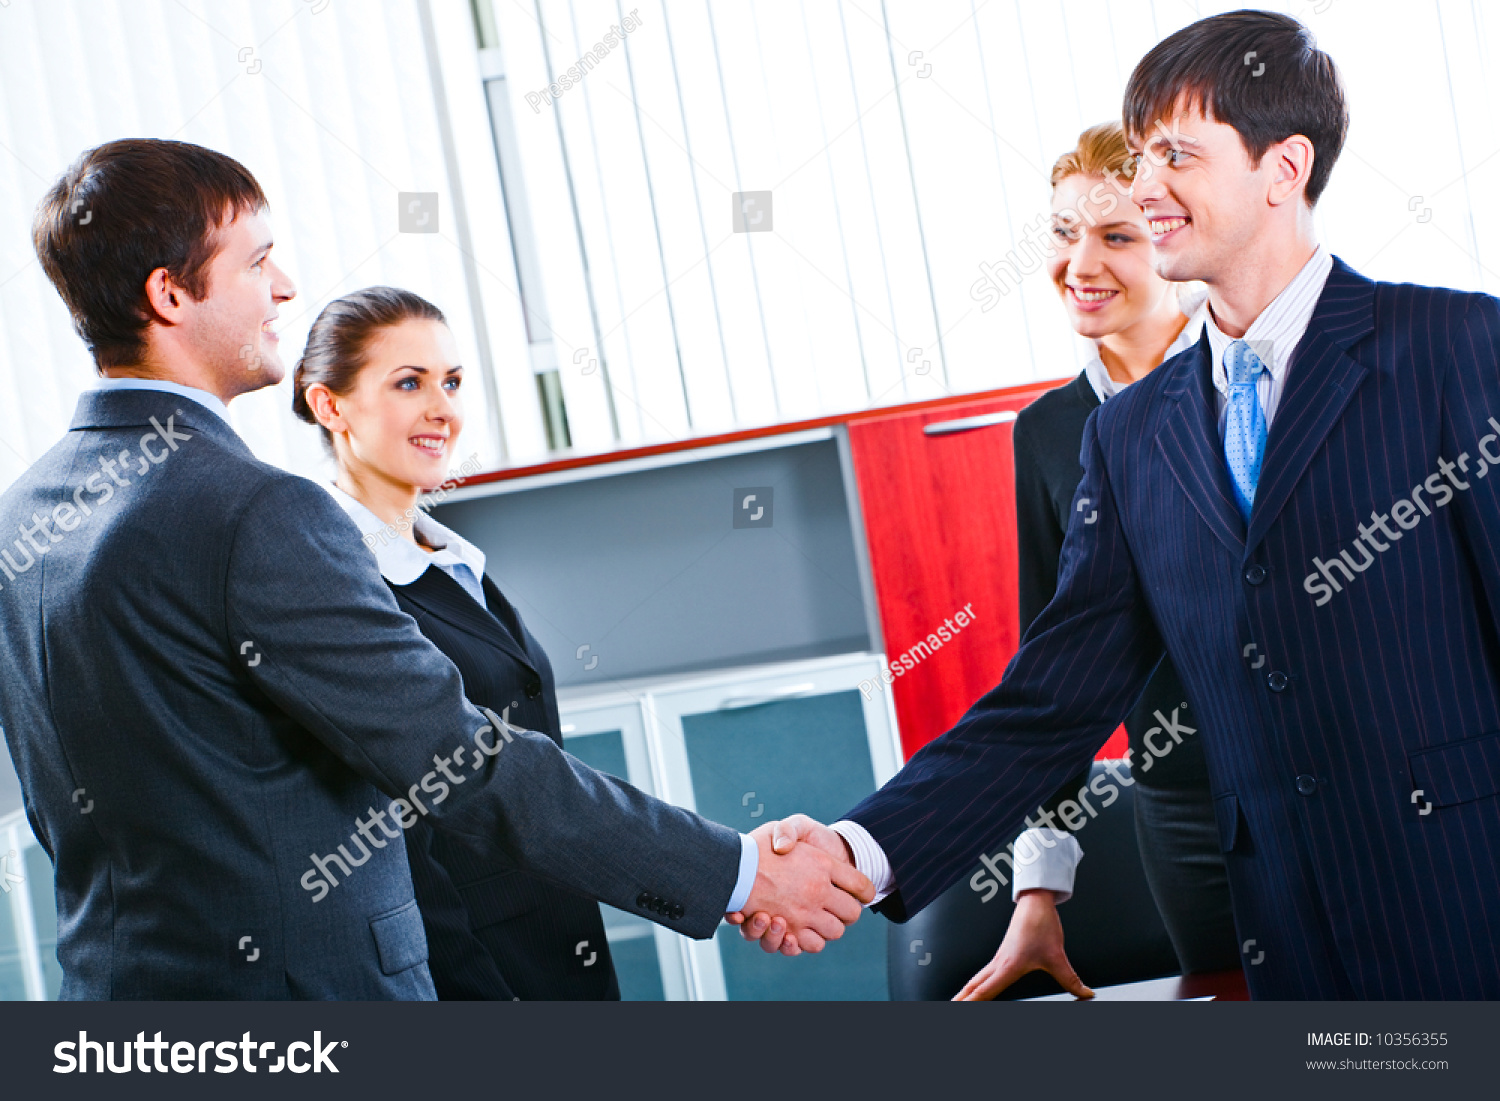 Business people handshake greeting deal at work photo free download - Successful Handshake Of Confident Business People Making A Deal